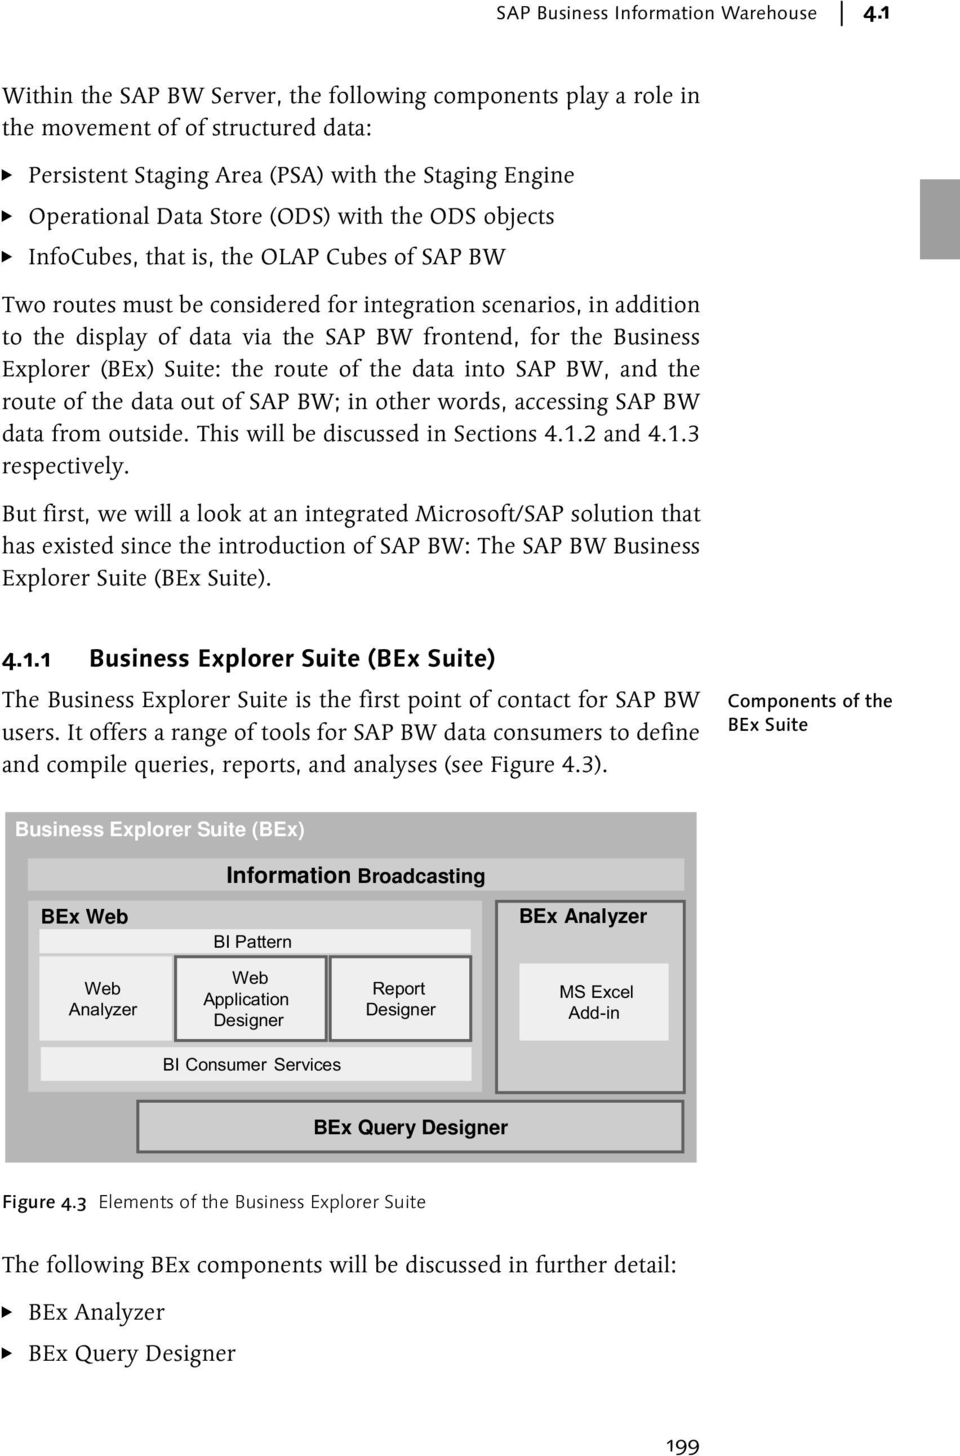 objects InfoCubes, that is, the OLAP Cubes of SAP BW Two routes must be considered for integration scenarios, in addition to the display of data via the SAP BW frontend, for the Business Explorer